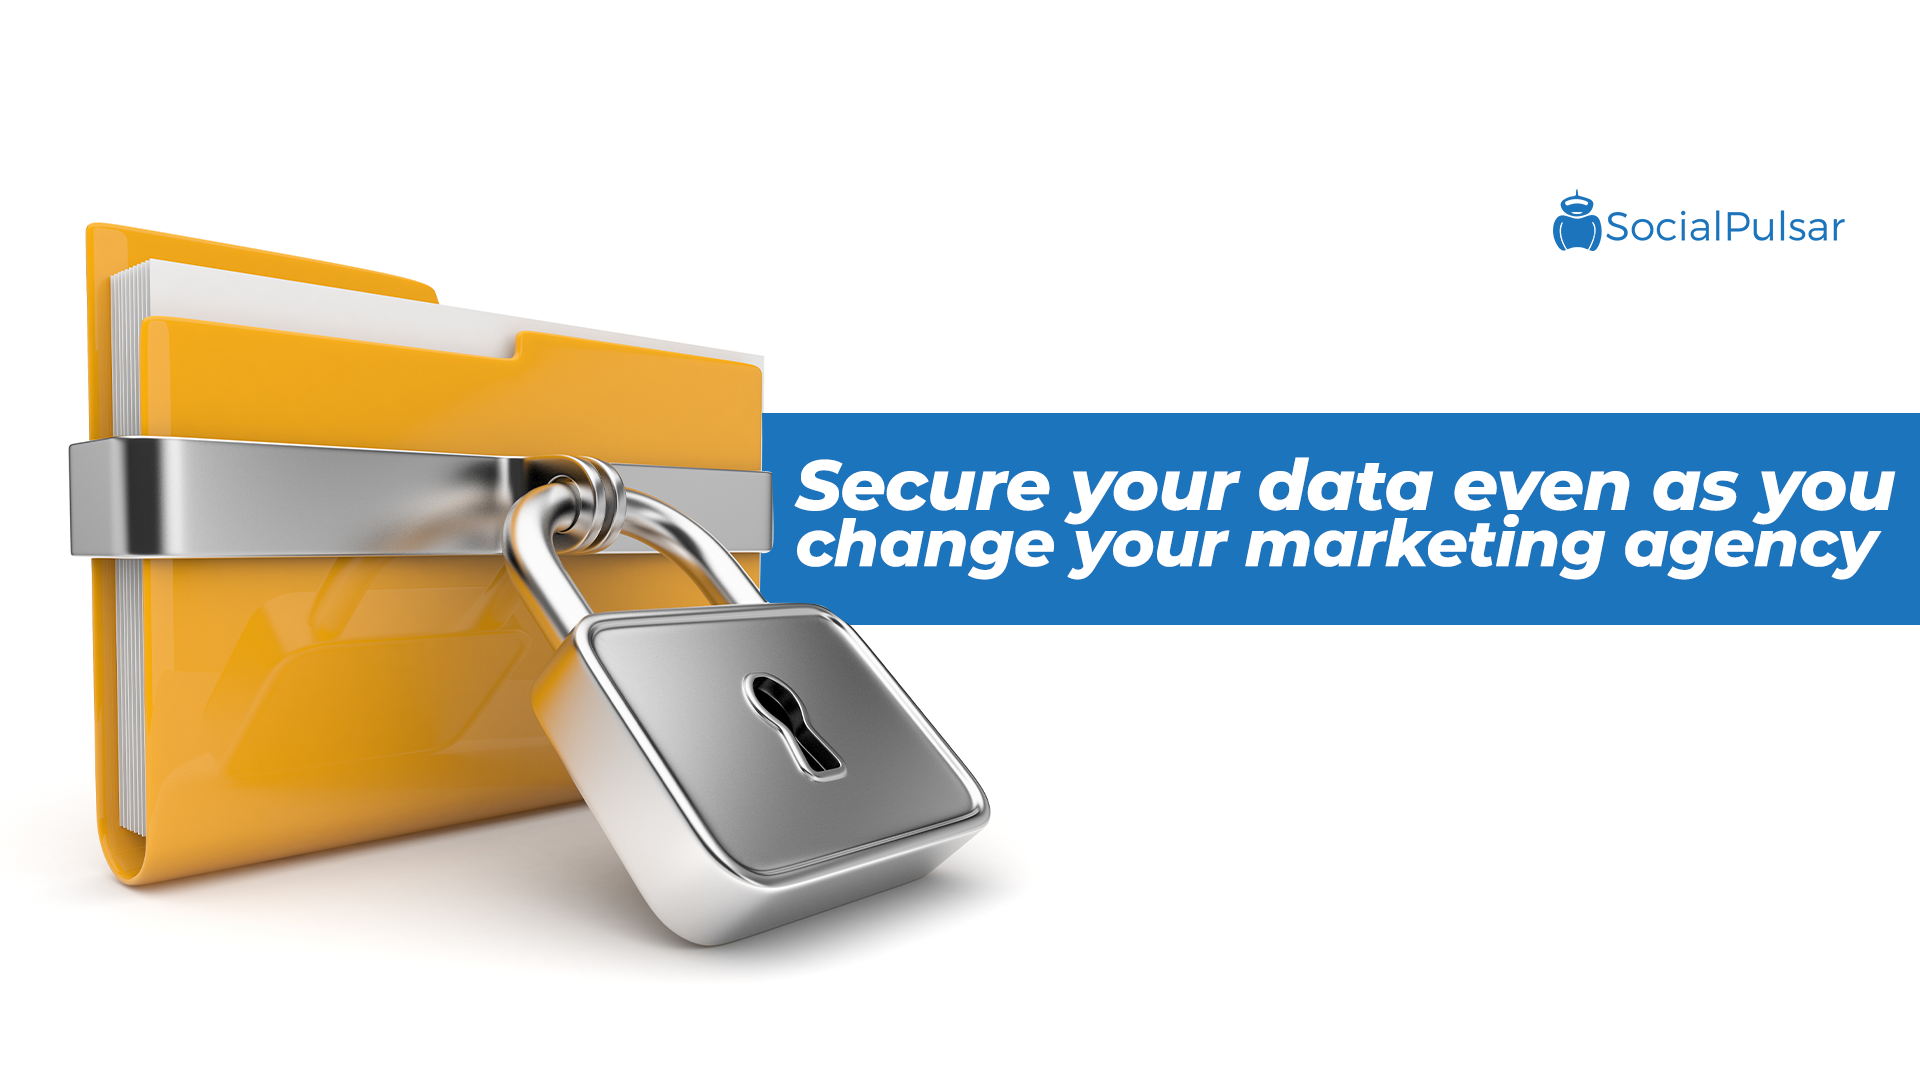 Secure Your Data Even As You Change Your Marketing Agency